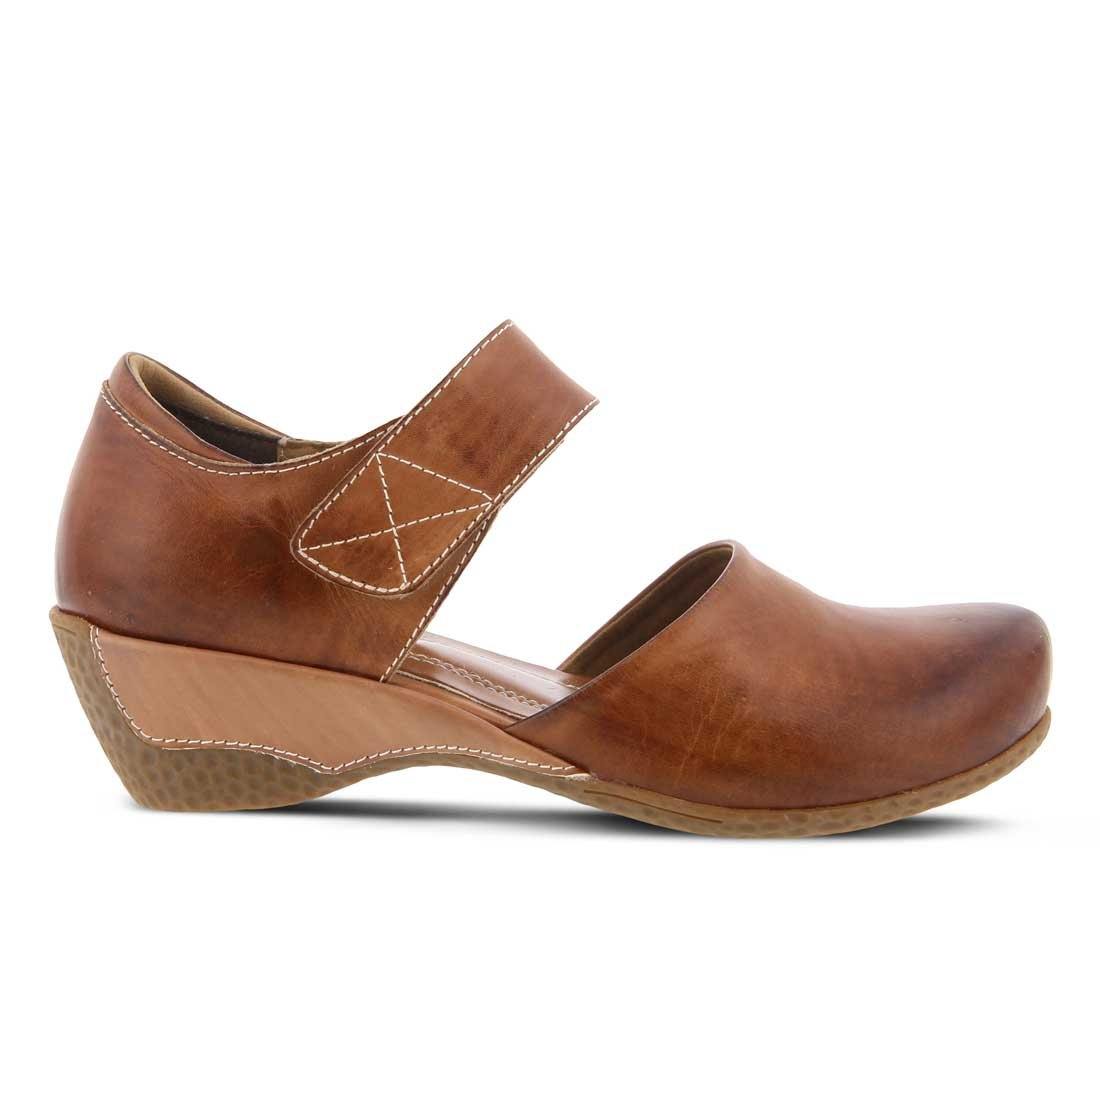 Spring Step Women's Gloss Mary Jane Shoe Brown by Spring Step (Image #4)